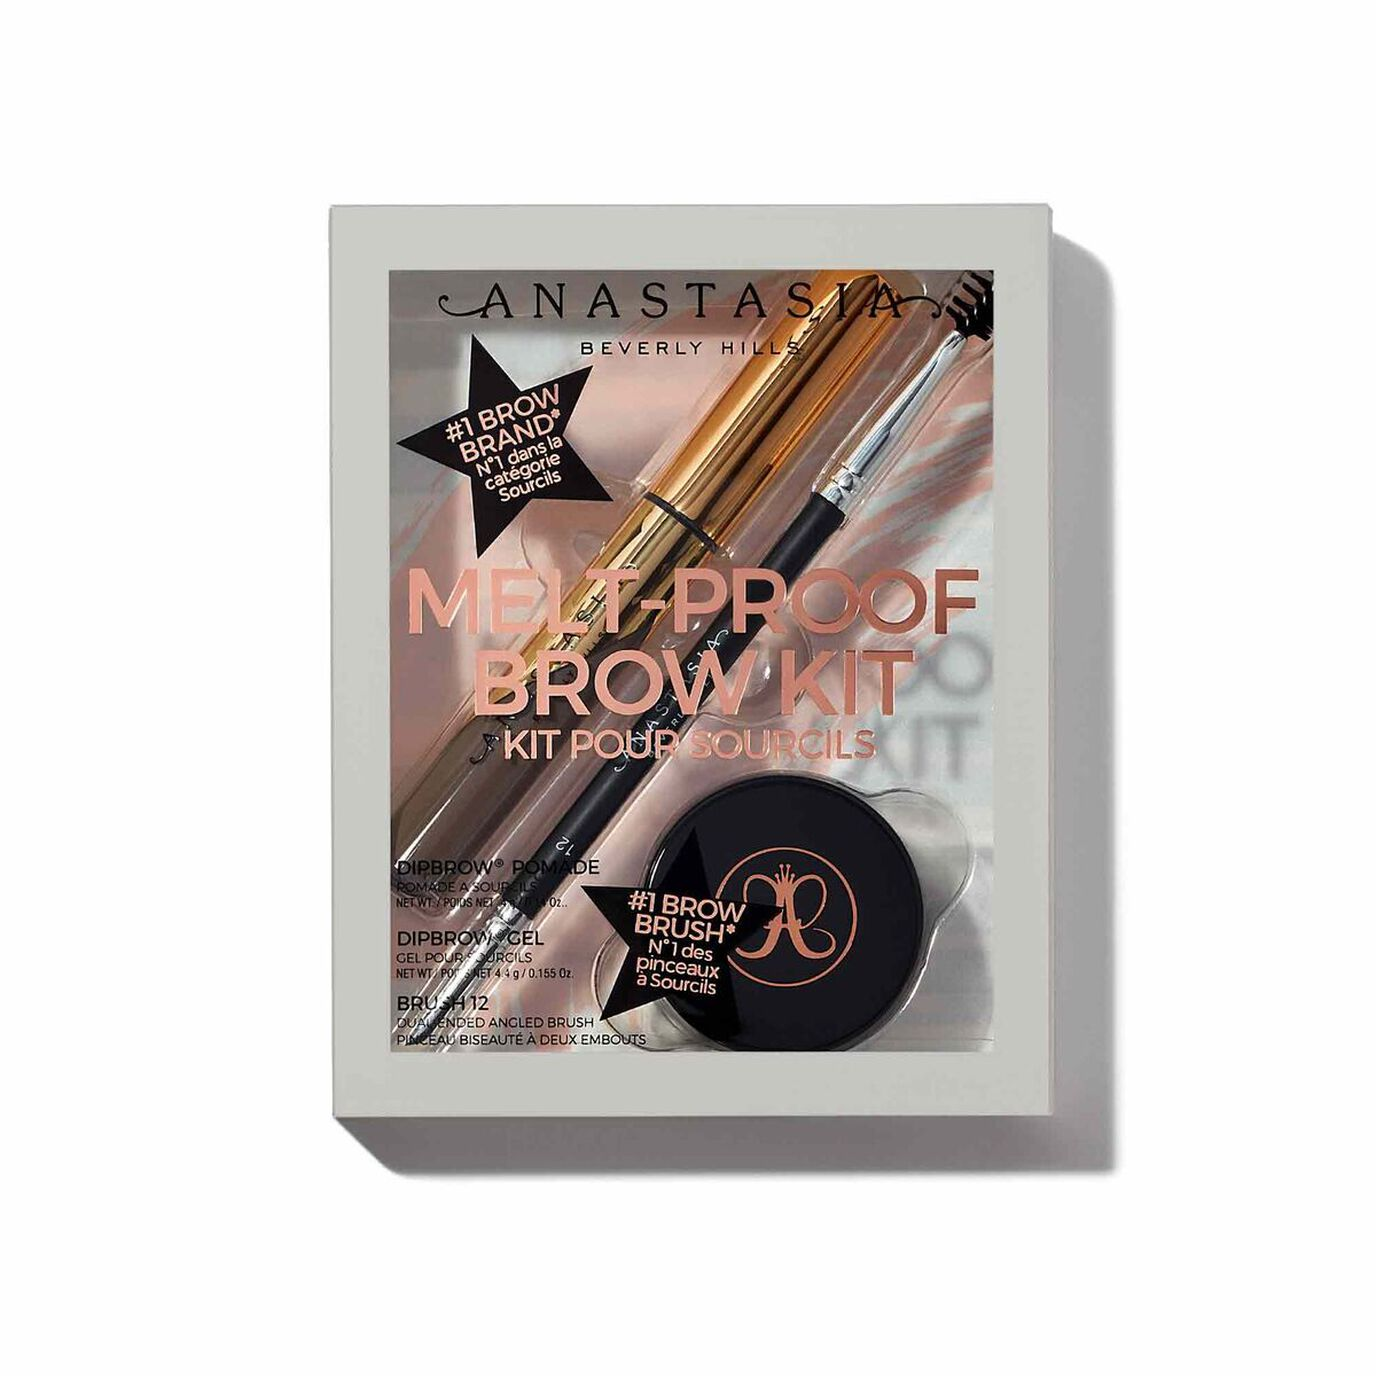 Melt-Proof Brow Kit - Medium Brown